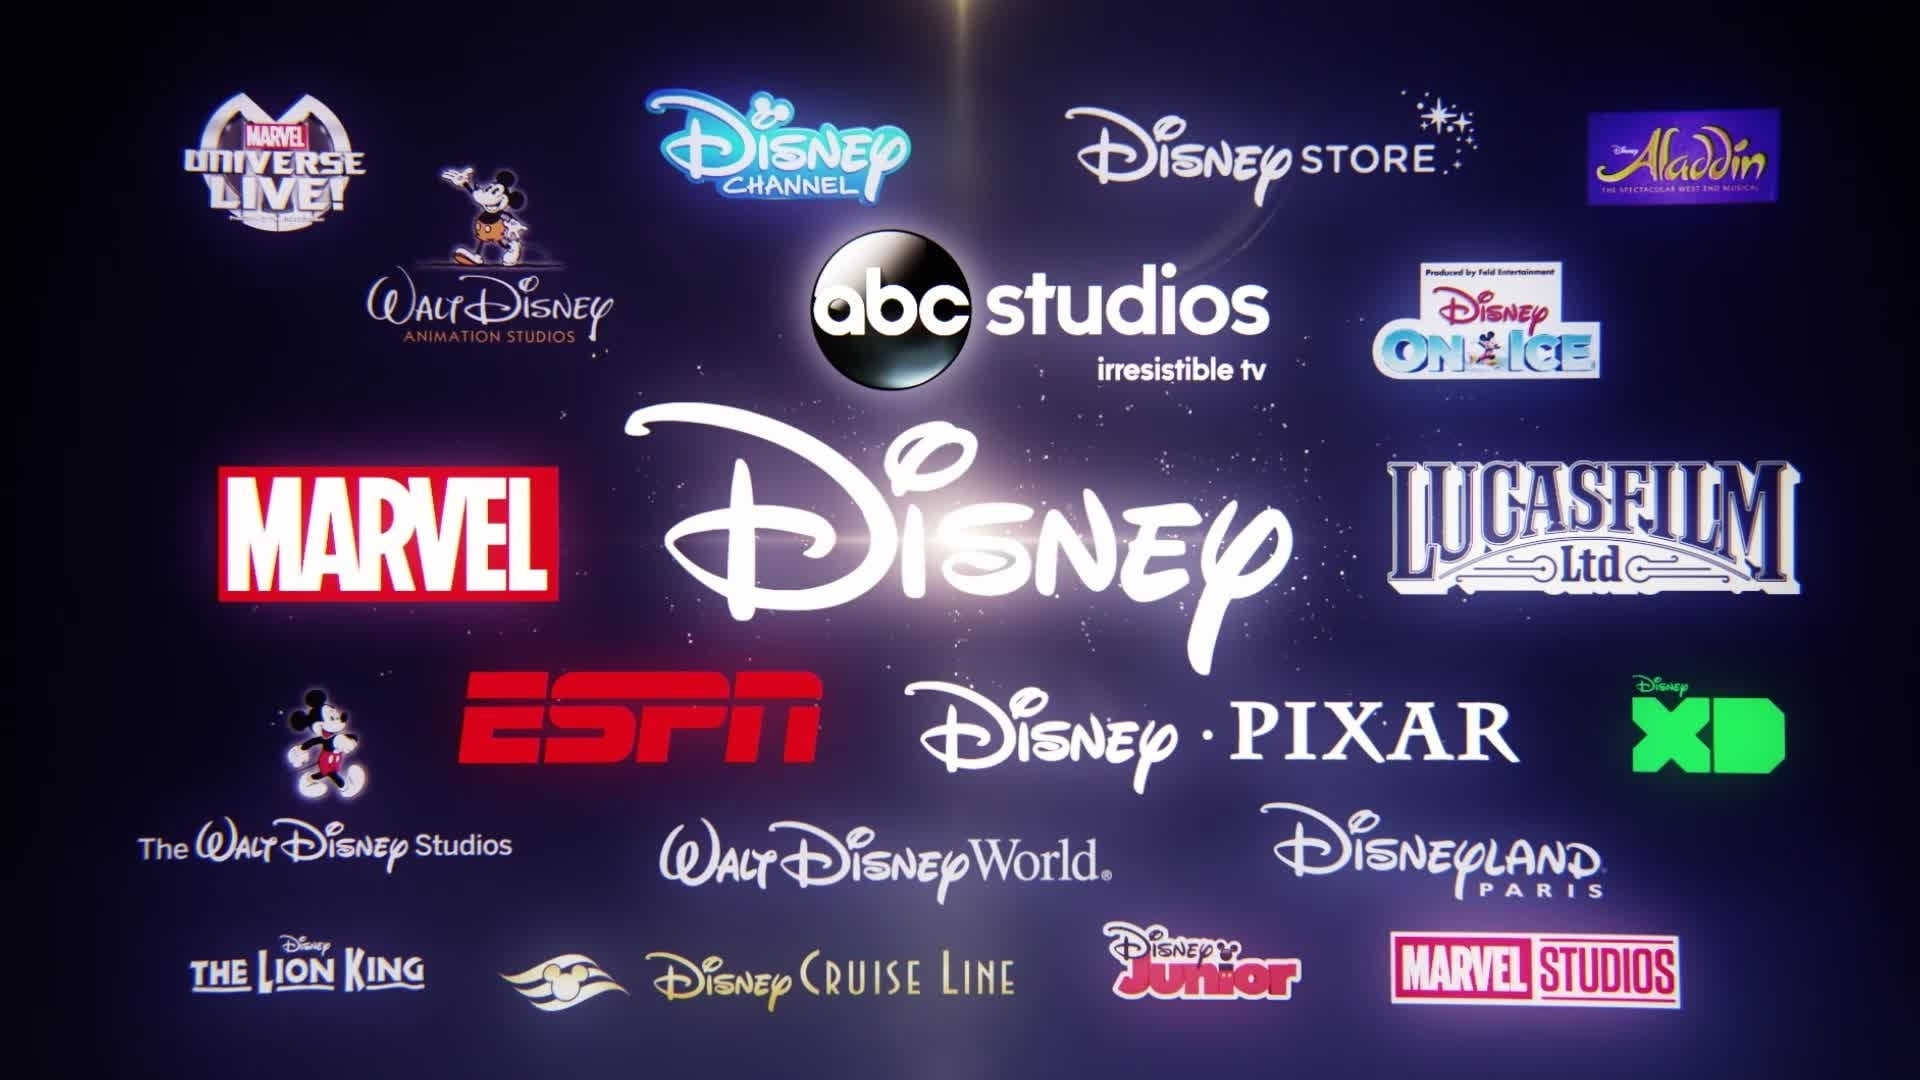 About Us - The Walt Disney Family of Companies Video (FI)